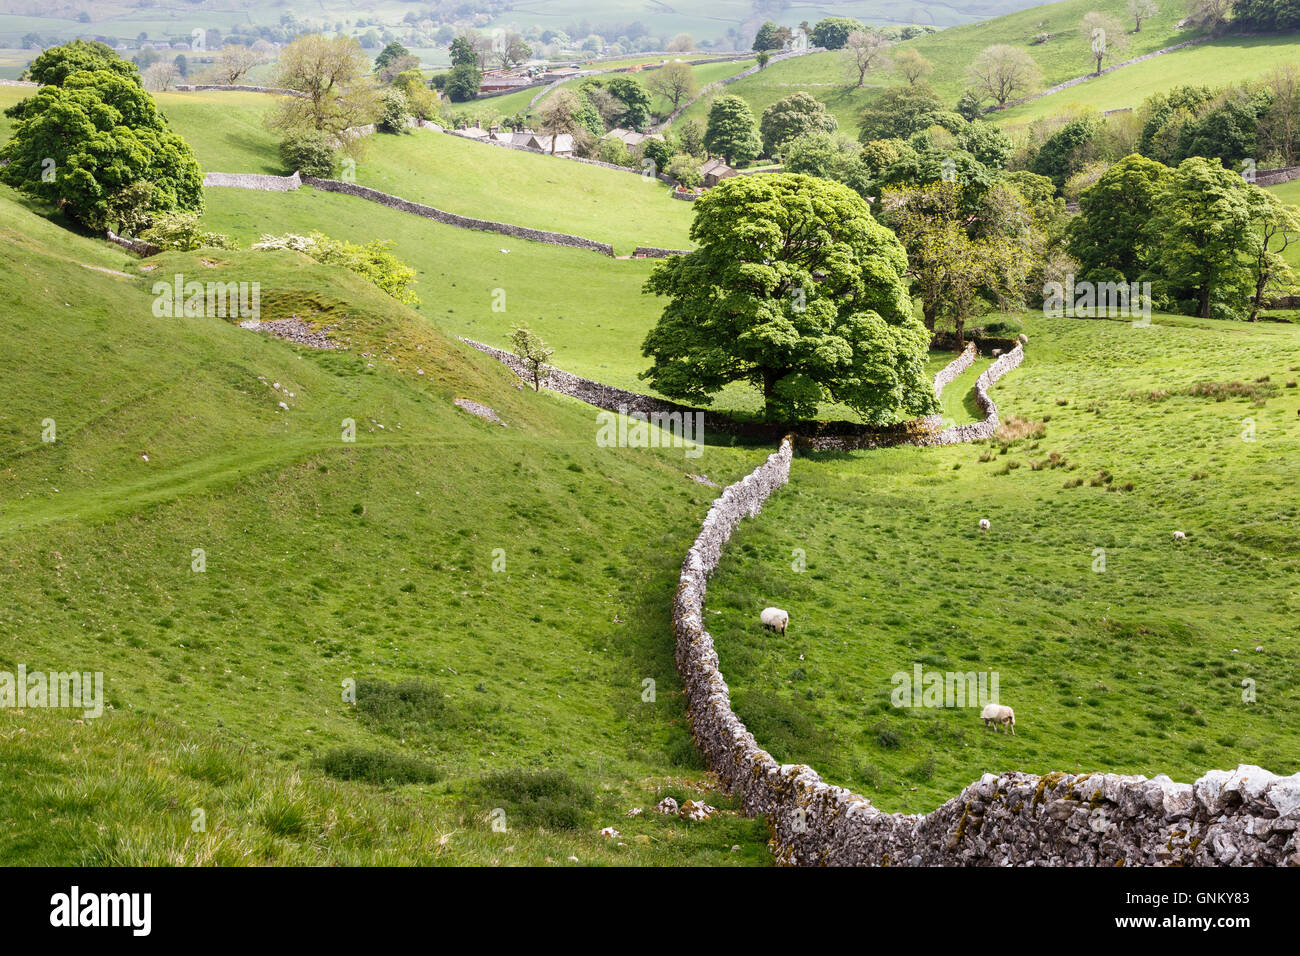 Looking towards the village of Thorpe in the Yorkshire Dales Stock Photo